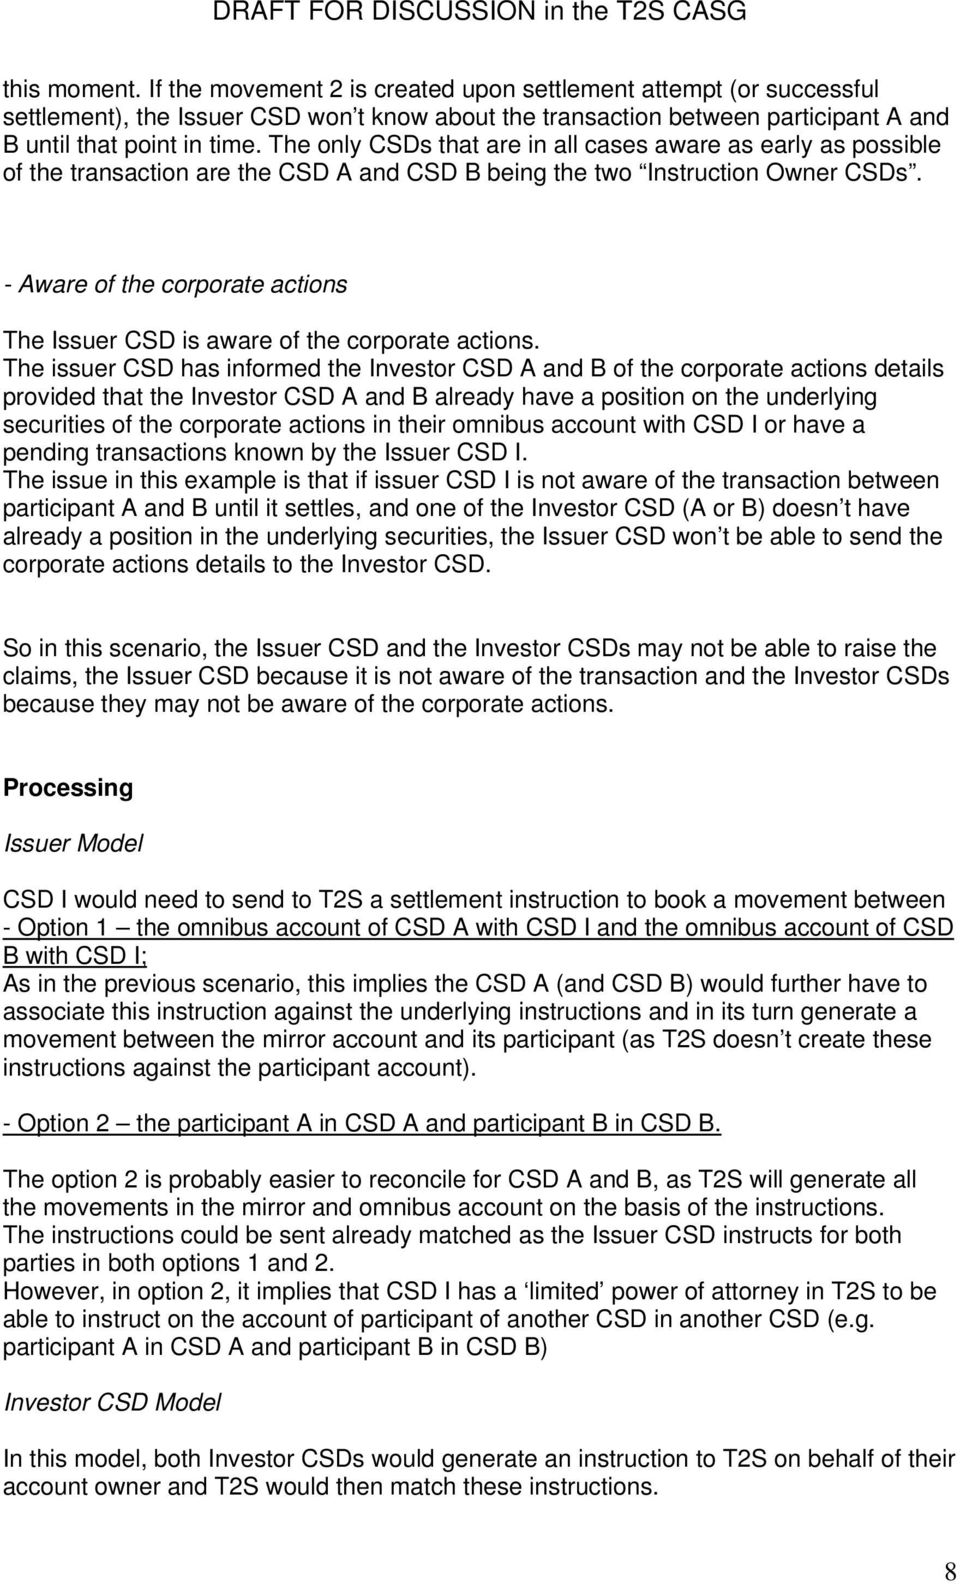 - Aware of the corporate actions The Issuer CSD is aware of the corporate actions.